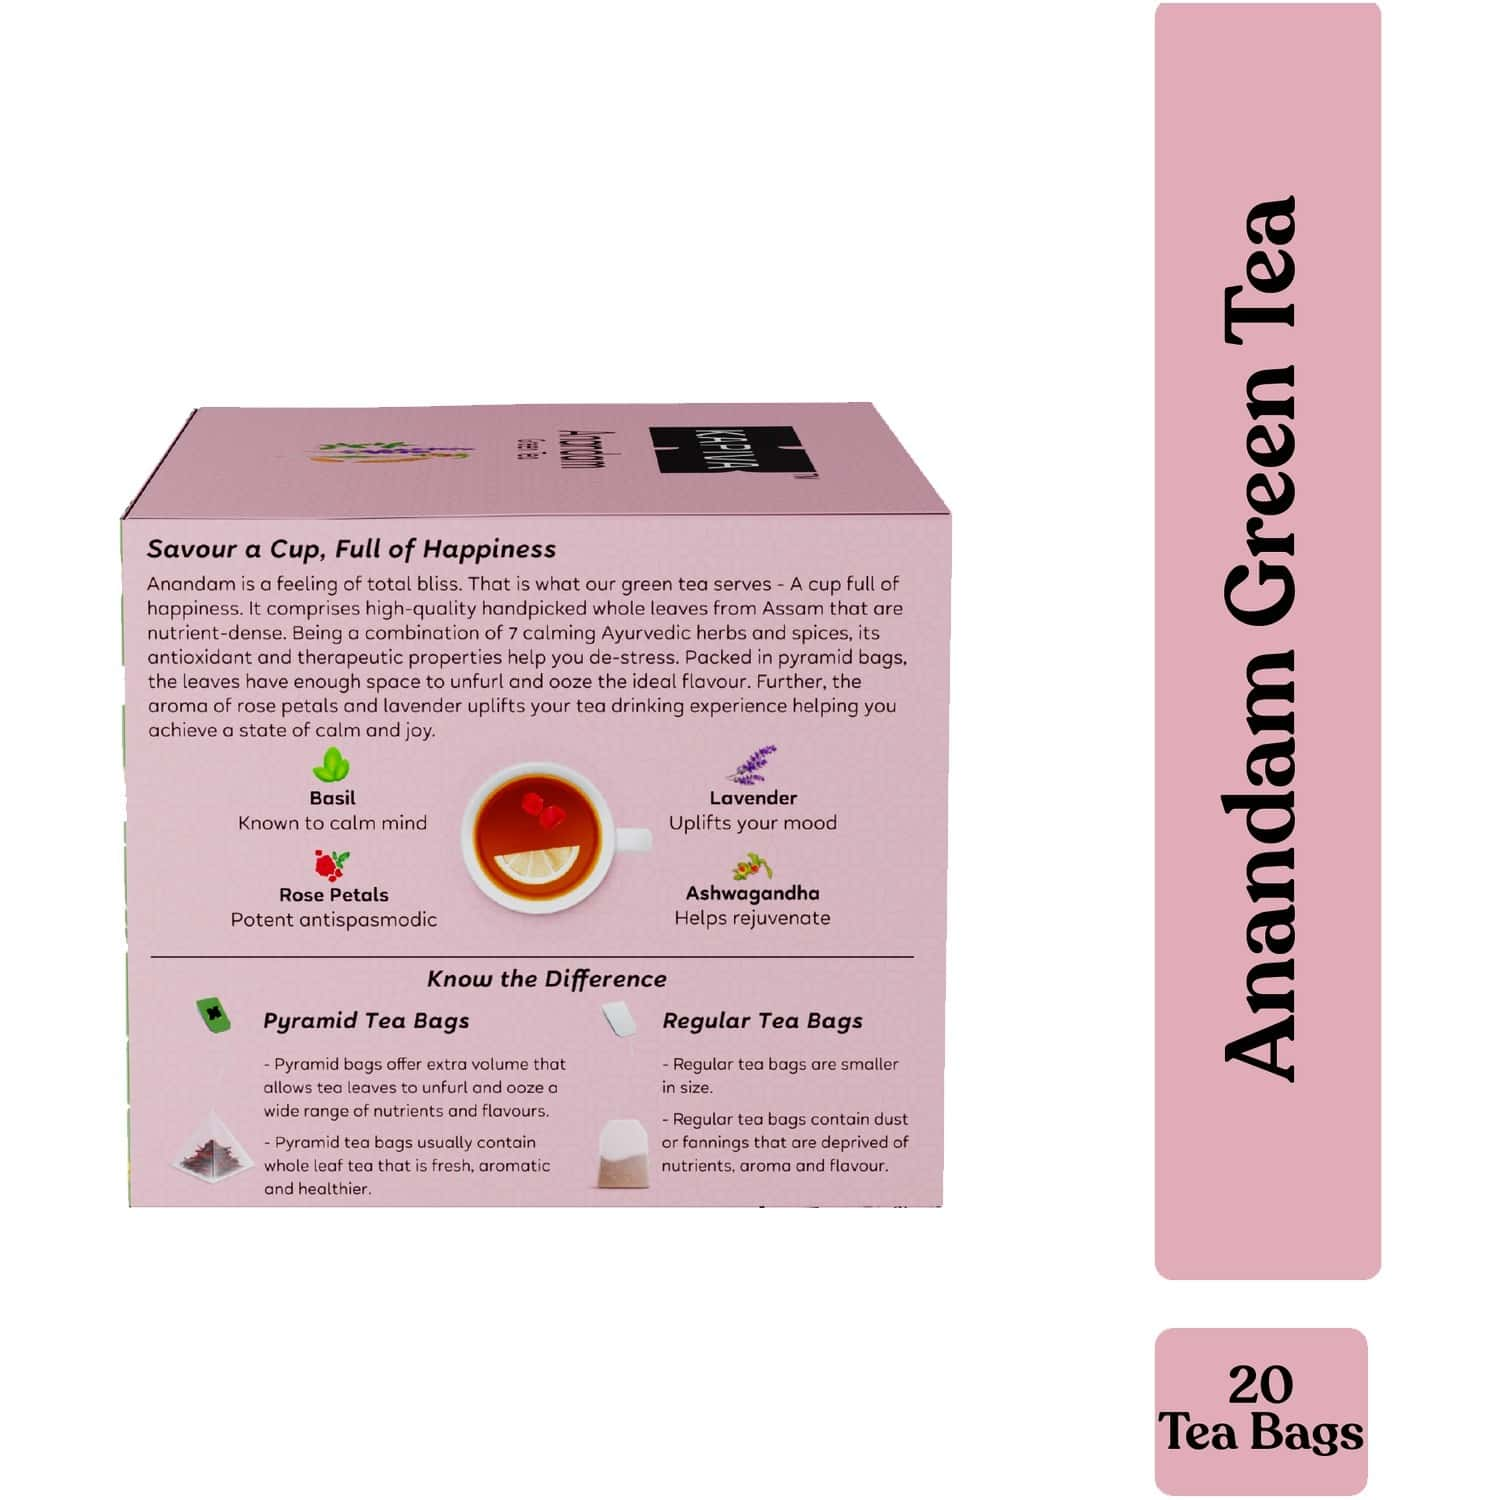 Kapiva Anandam Green Tea   Helps De-stress & Relax   Enriched With Lavender, Ashwagandha And Others   20 Tea Bags